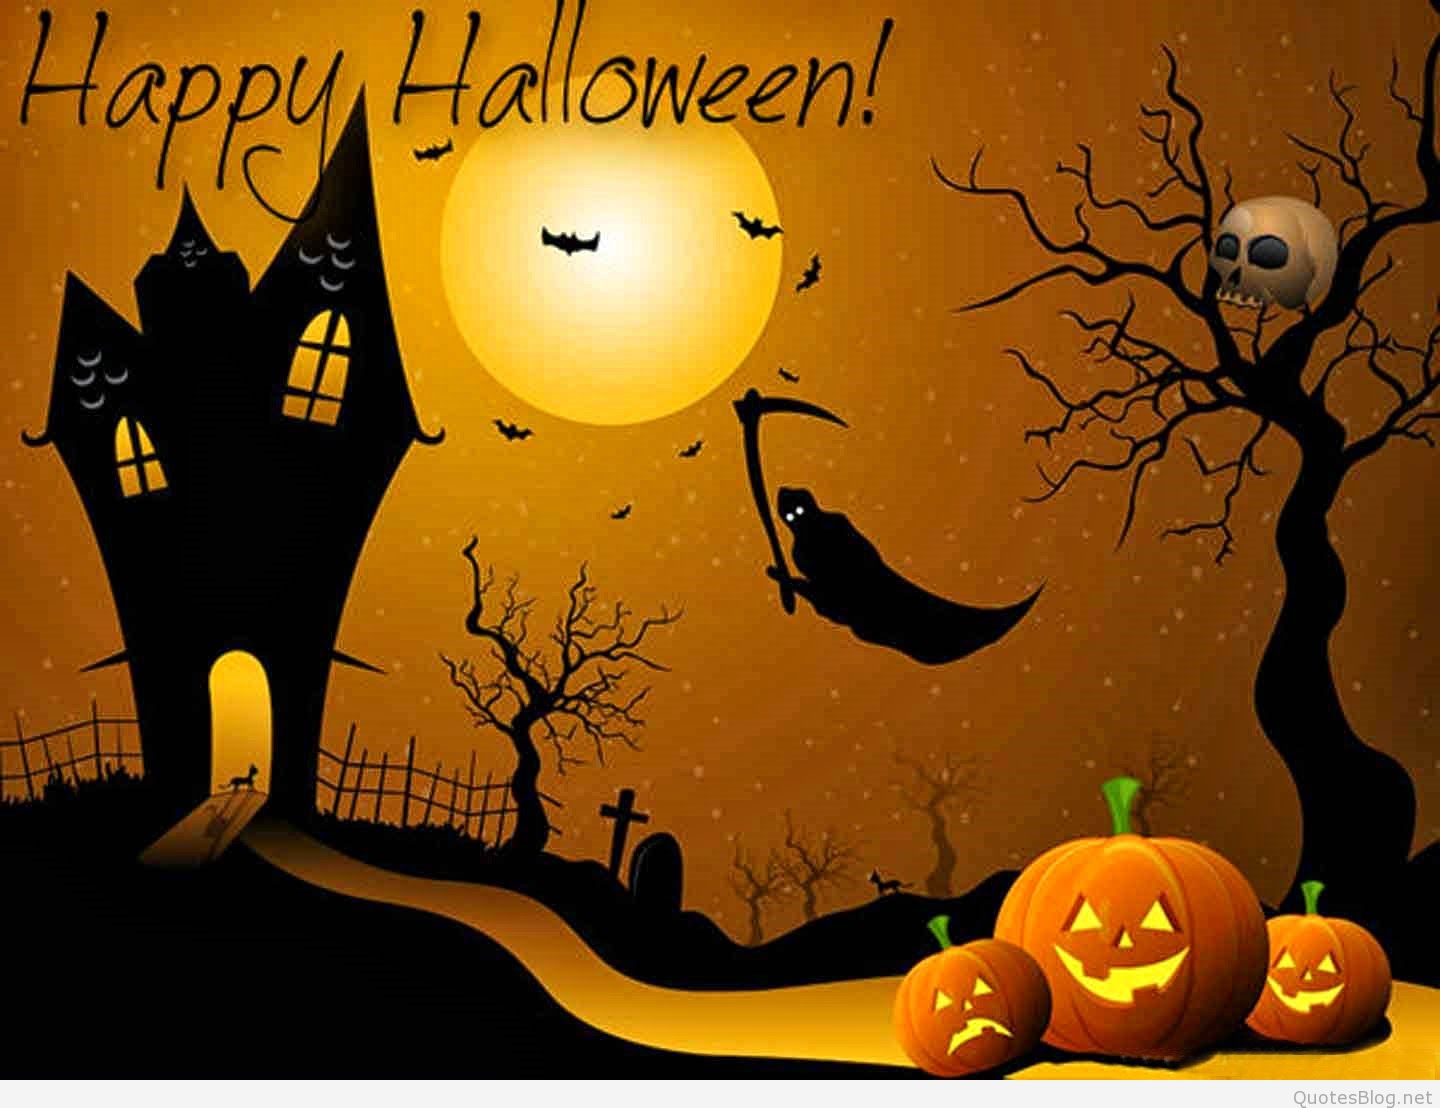 halloween greeting card   Fast lunchrock co halloween greeting card